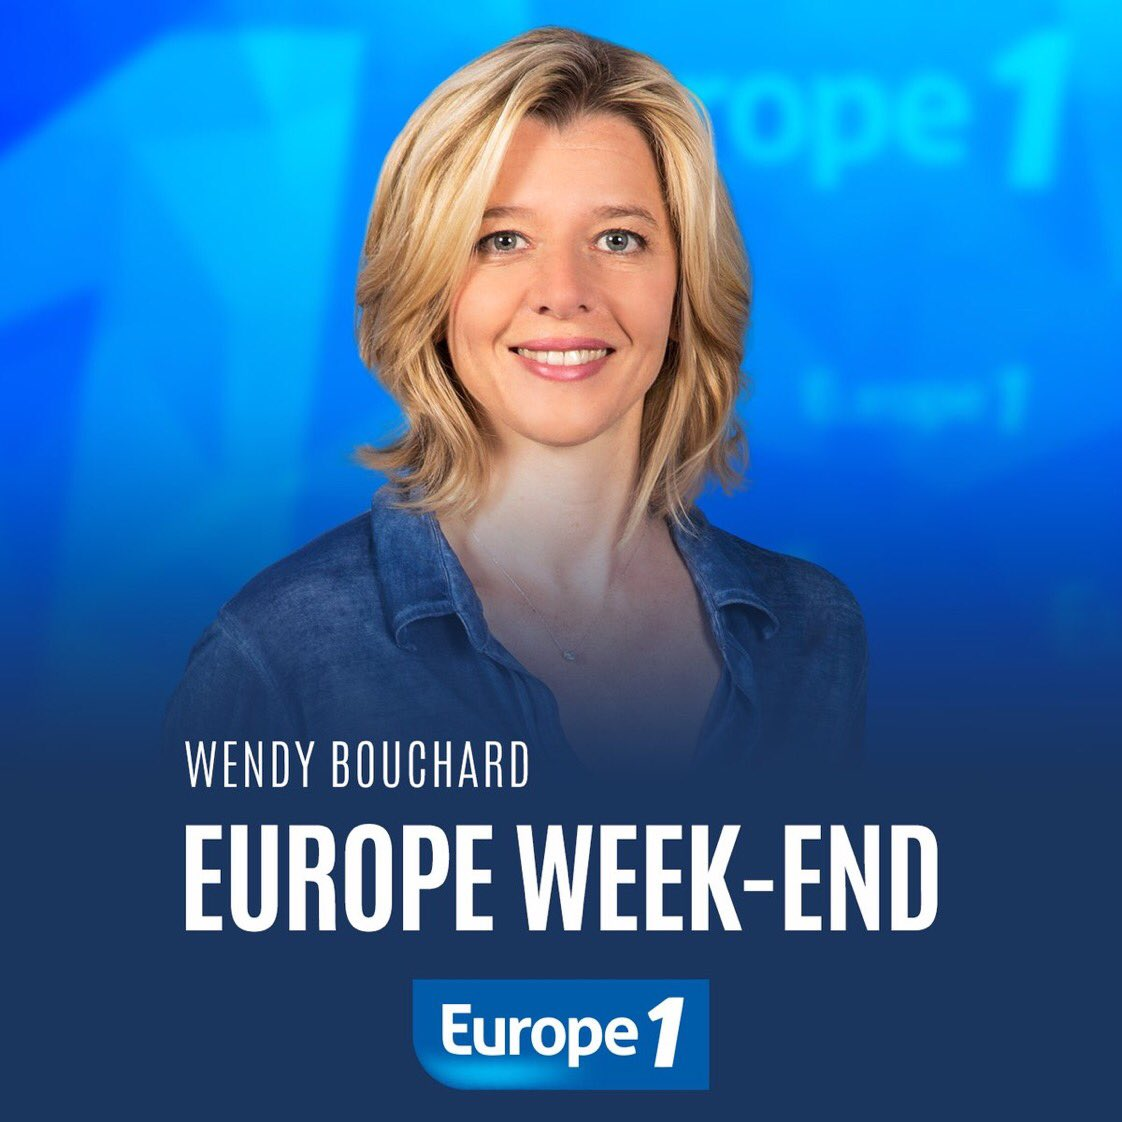 #E1WE Latest News Trends Updates Images - Europe1